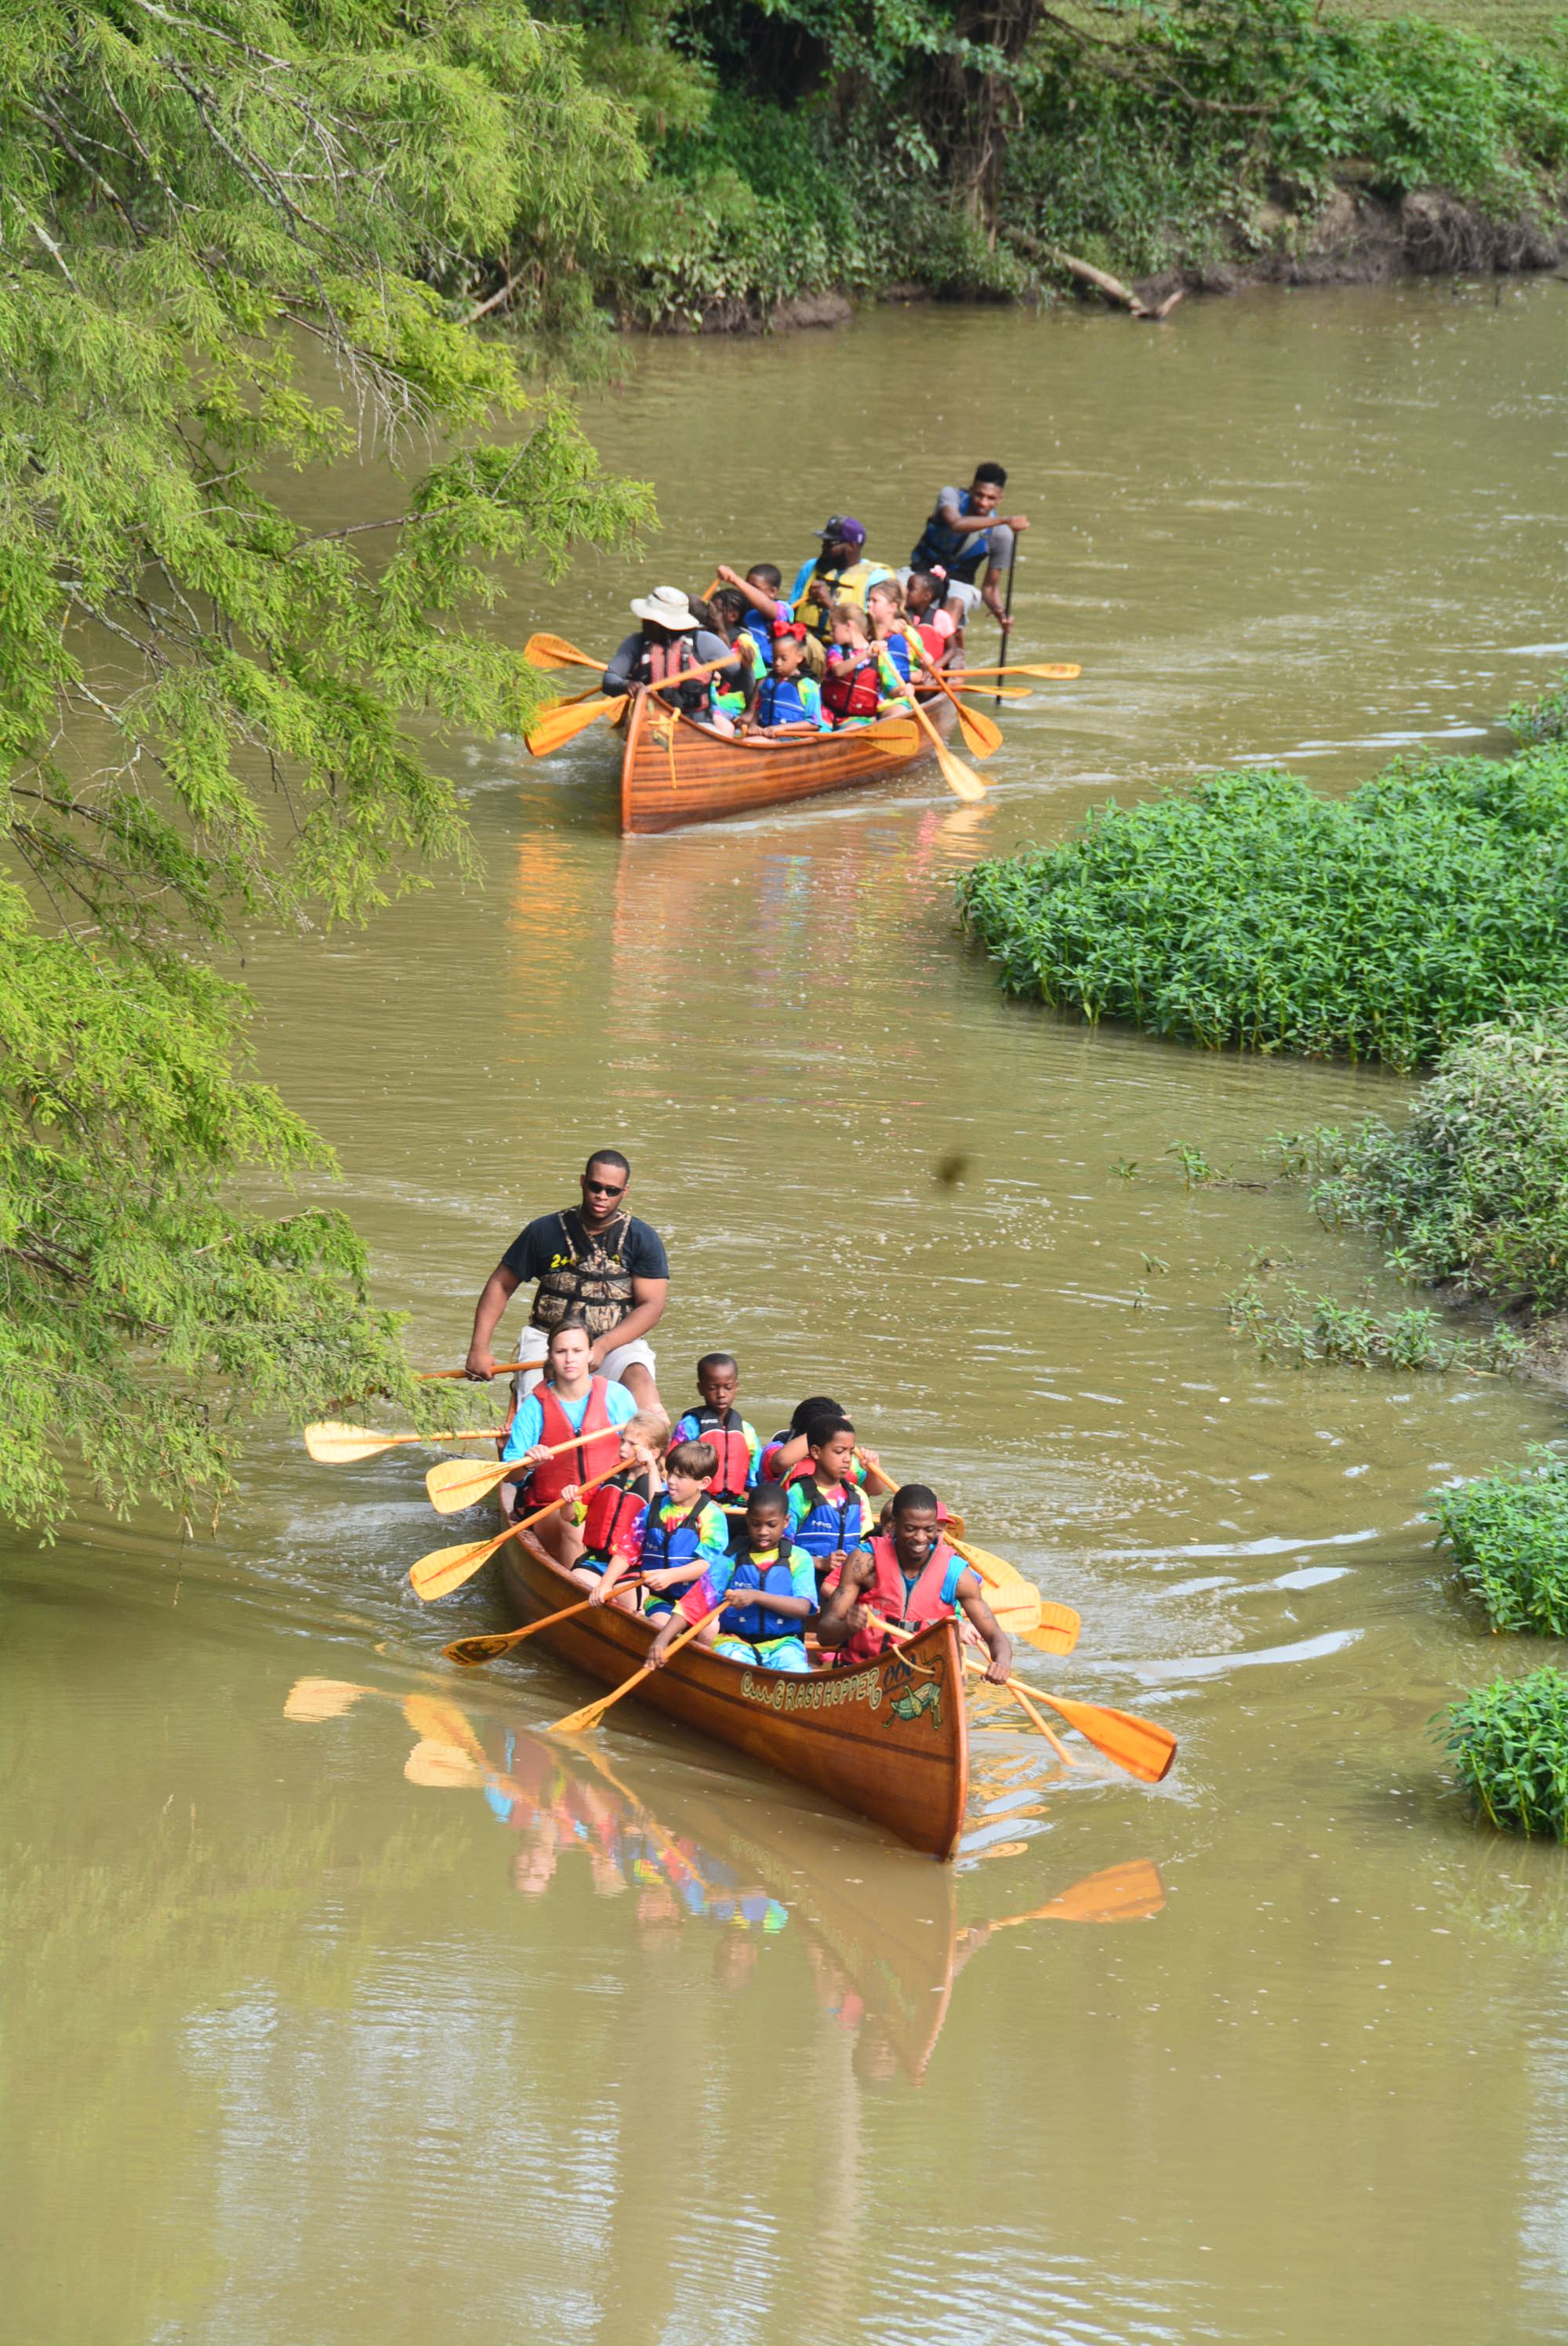 The long landscape of the river. Many young children on two different canoes are being guided through the river. Image courtesy of John Ruskey.